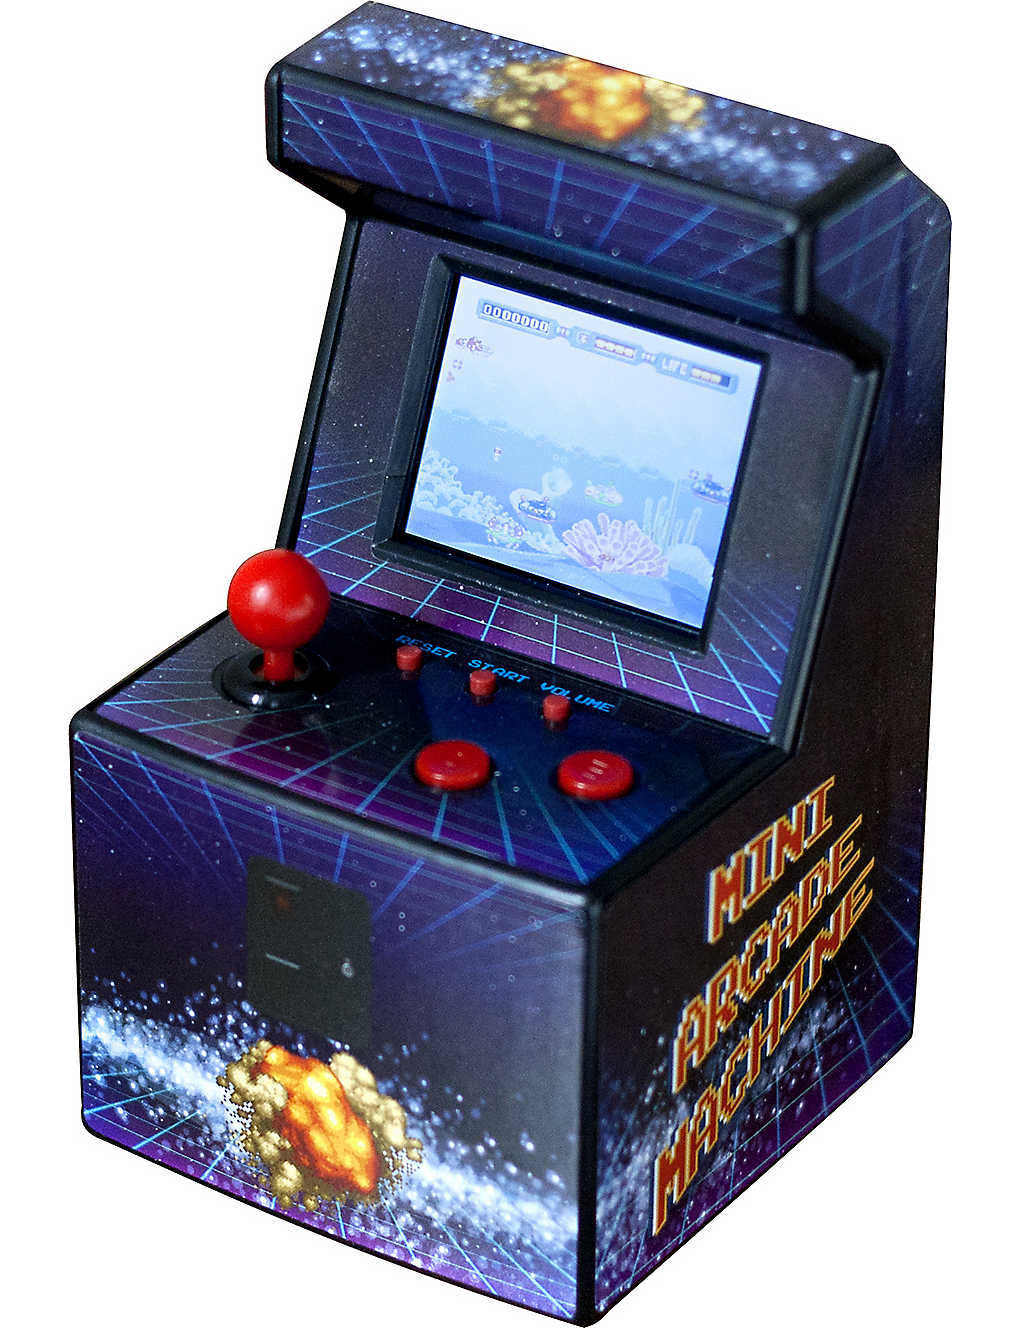 3dfe3b2d0e2a Mini arcade machine